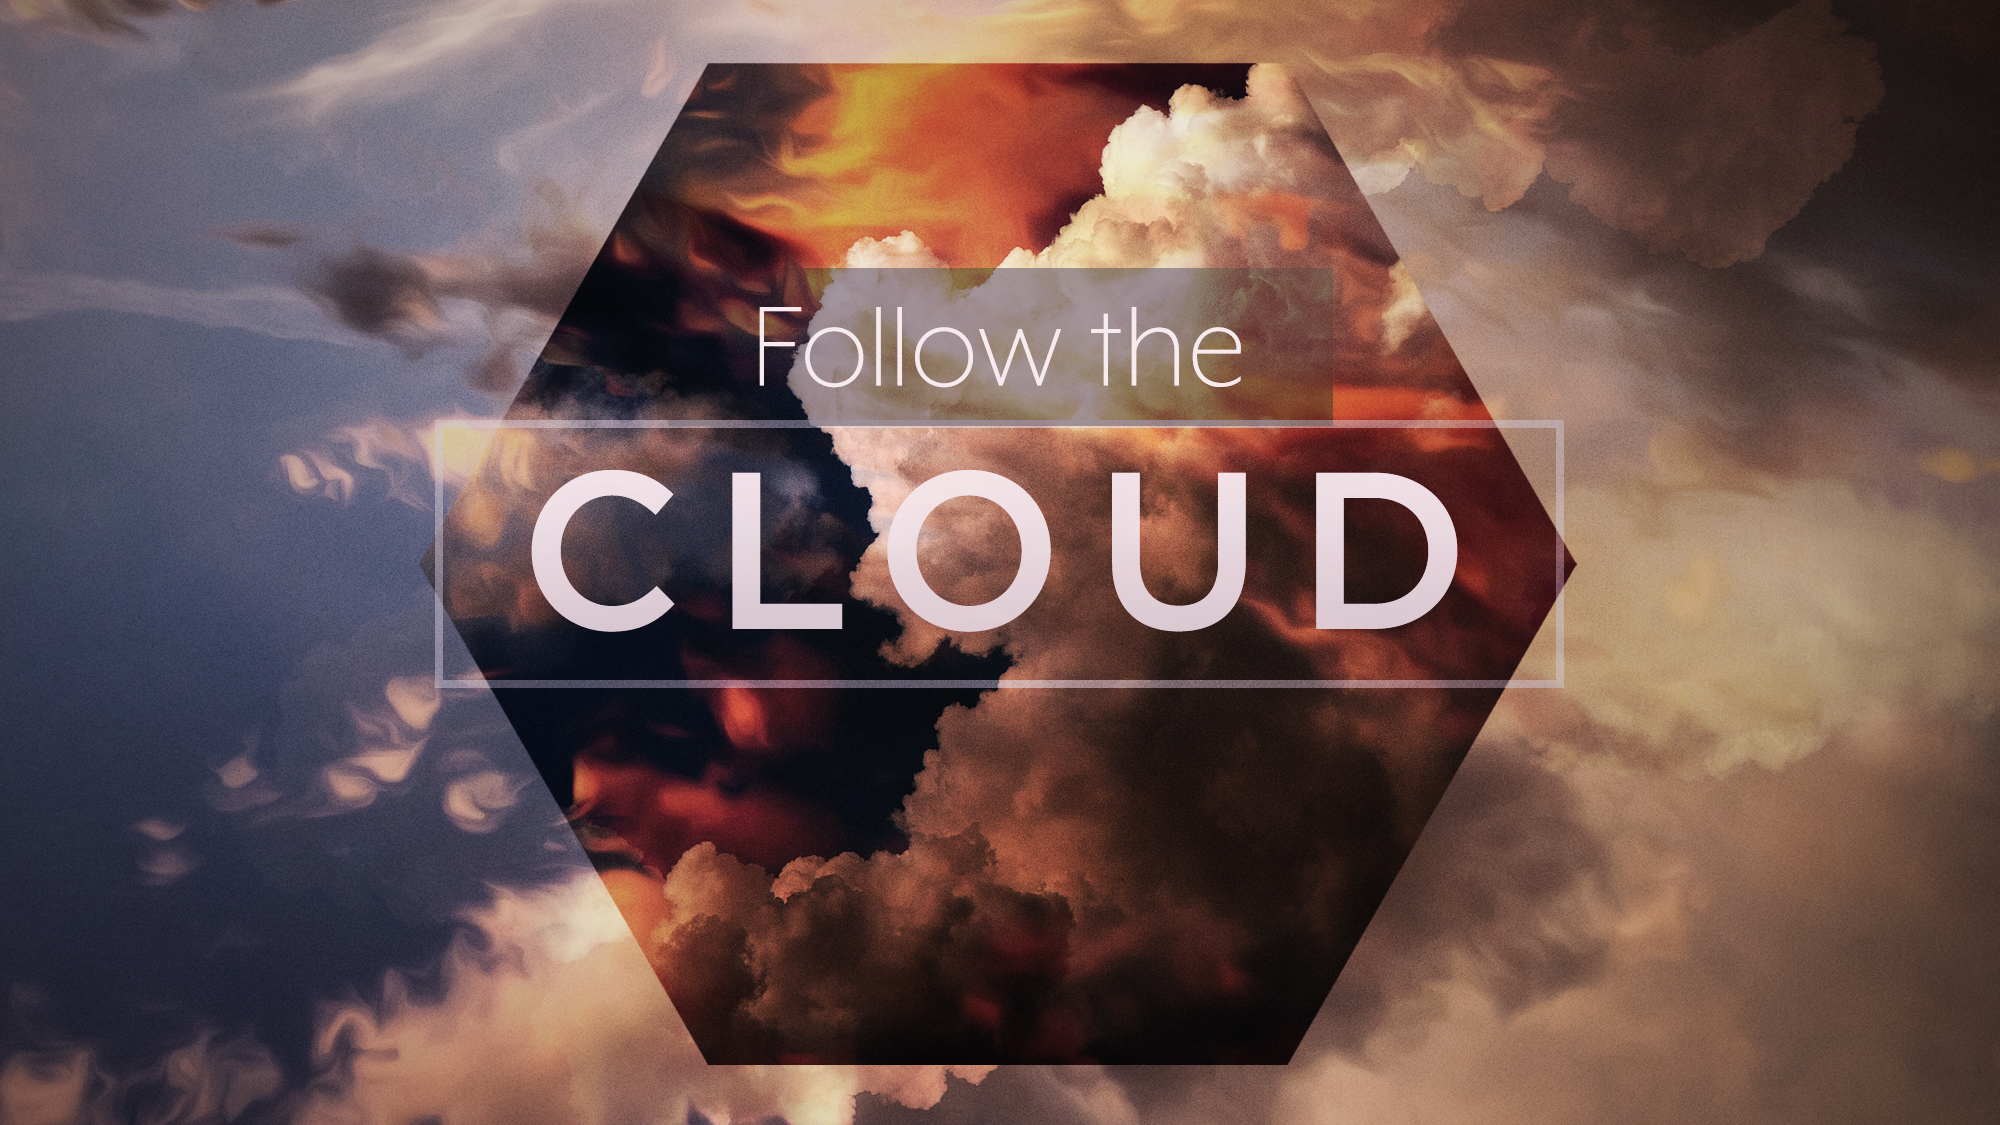 Follow-the-Cloud-Web-Image.jpg